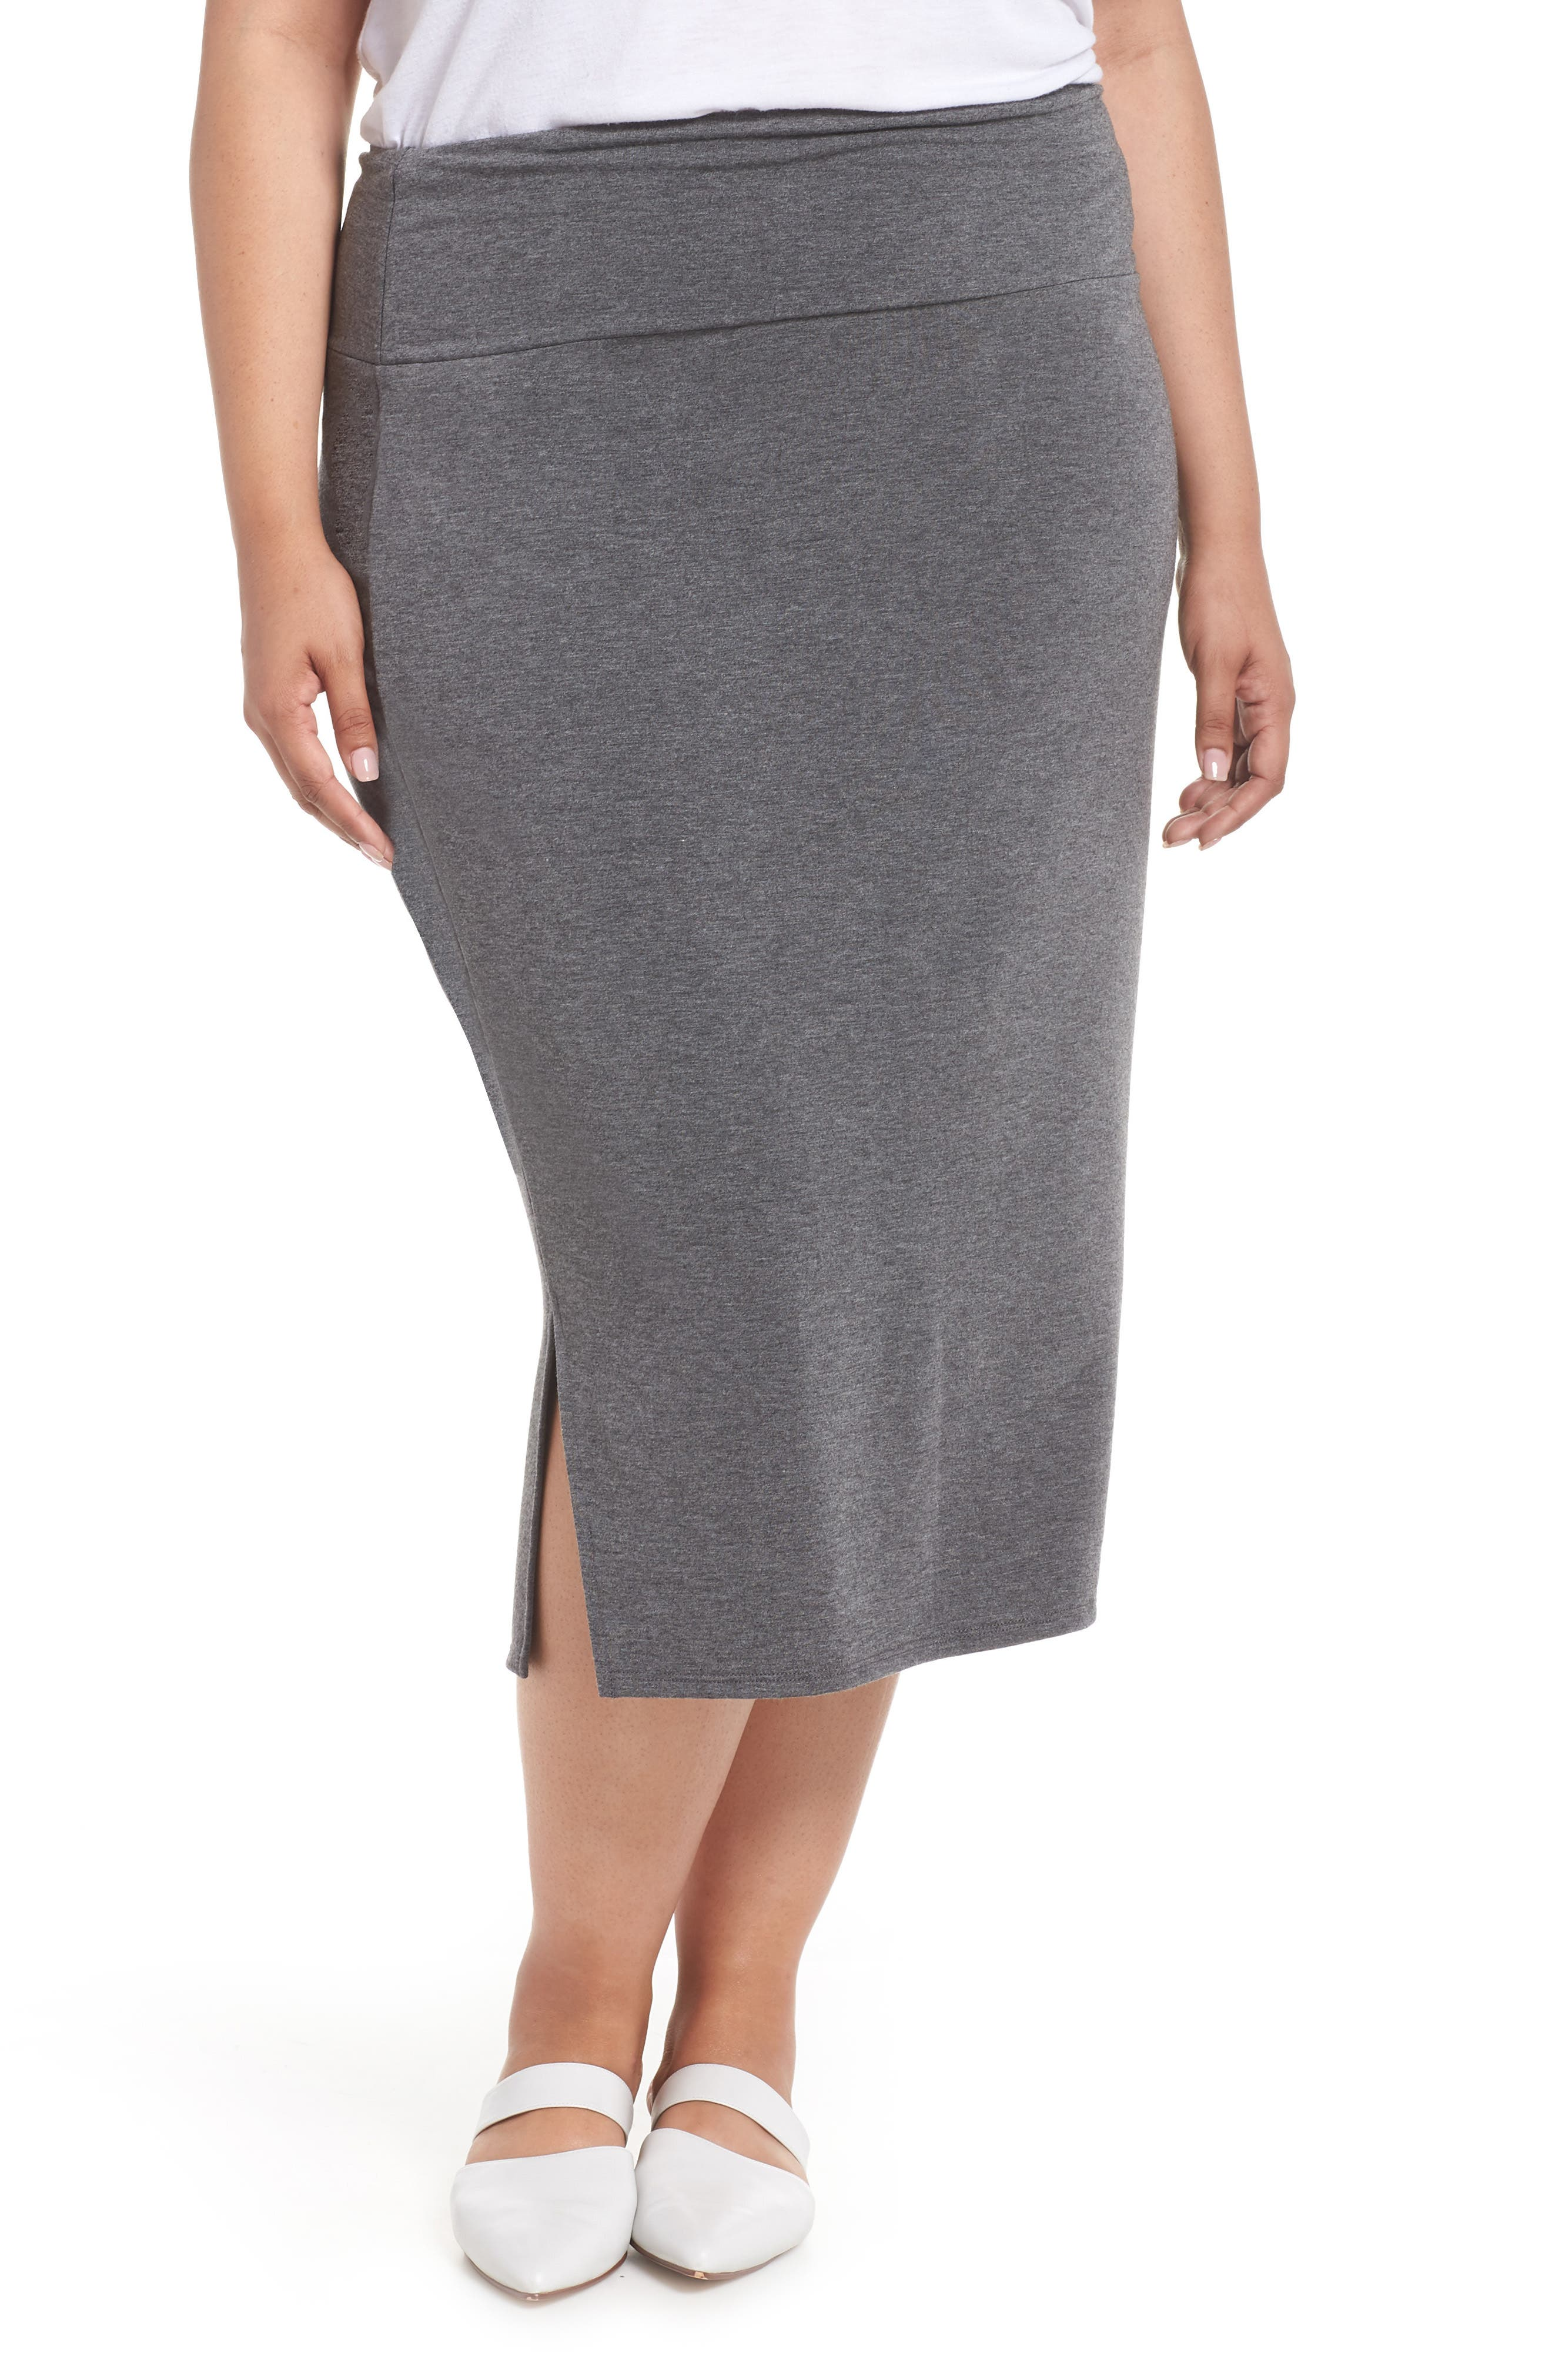 Off Duty Knit Skirt,                         Main,                         color, GREY DARK CHARCOAL HEATHER